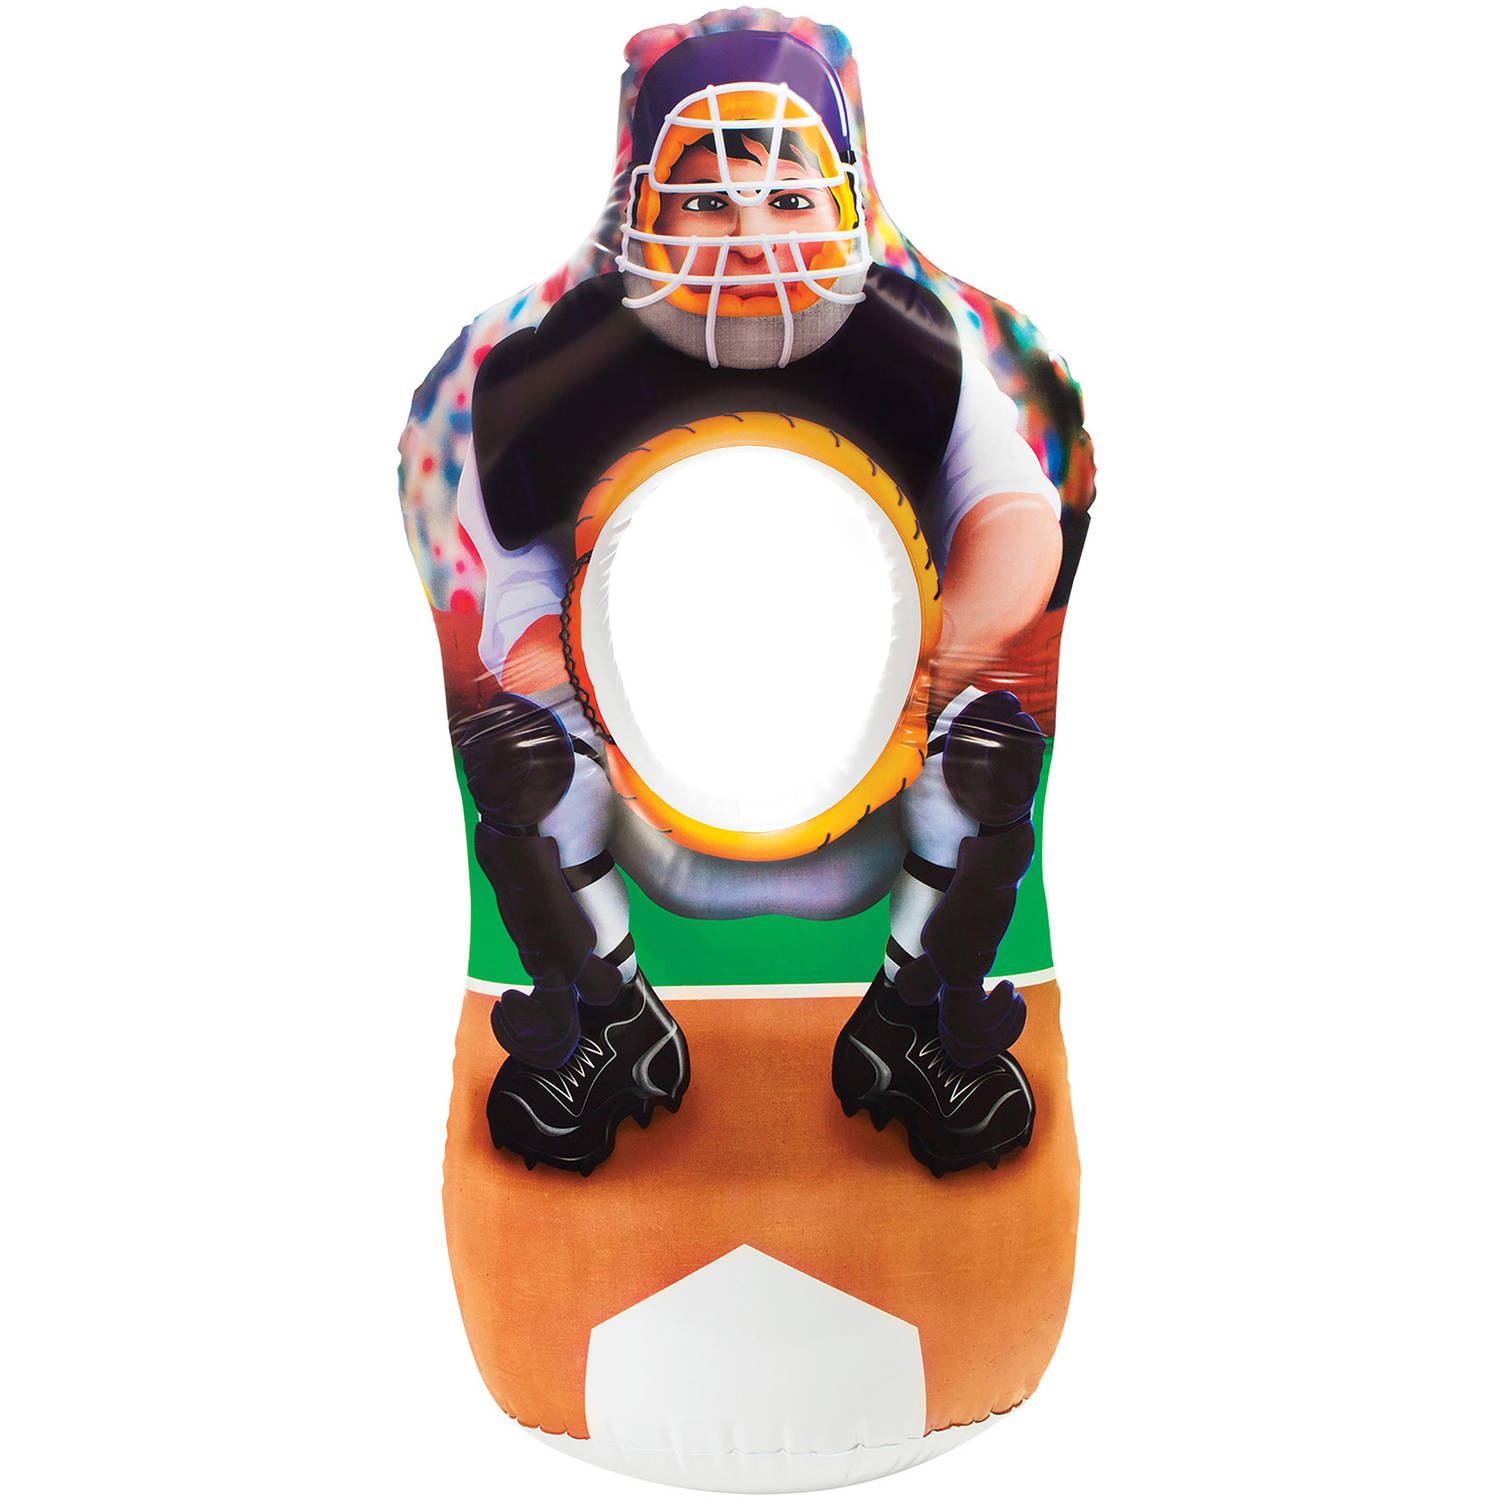 Toysmith Inflatable Sports Toss Target